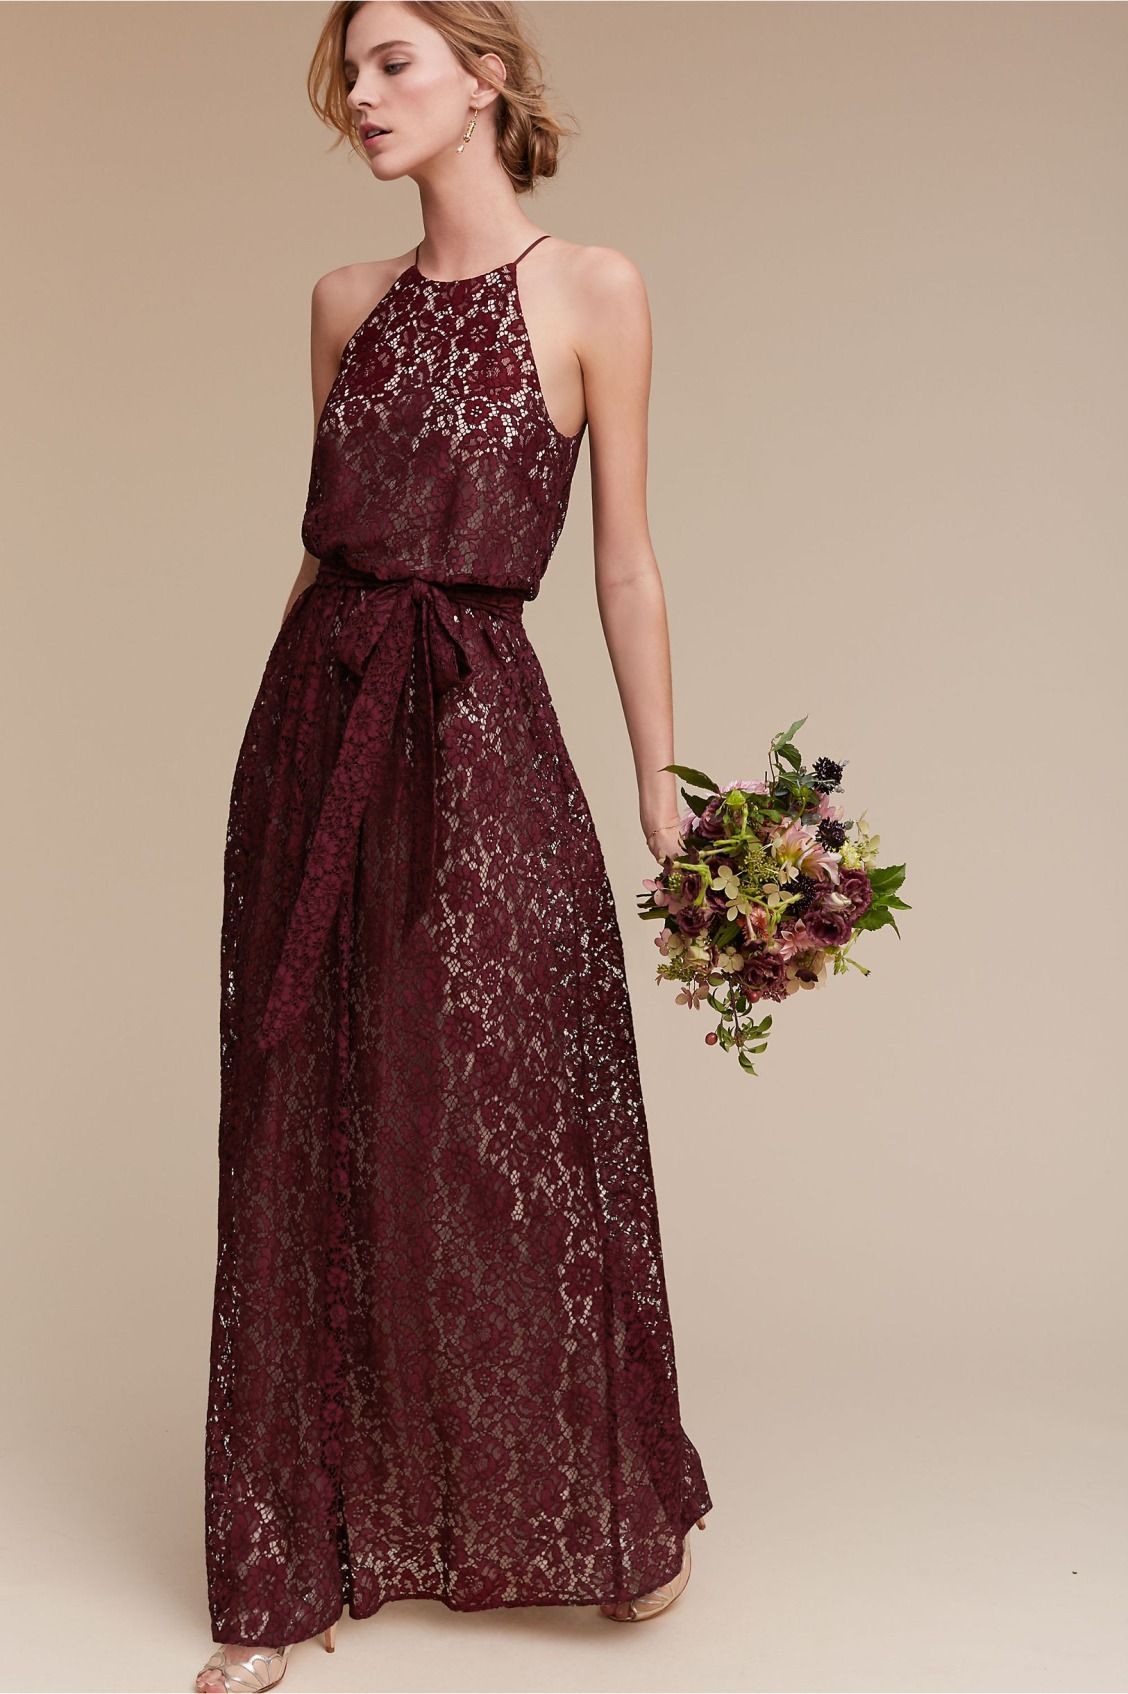 Allover lace alana lace dress in black cherry from bhldn red cheap maid of honor dresses buy quality maid of honor directly from china cheap bridesmaid dresses suppliers burgundy bridesmaid dresses 2017 lace halter ombrellifo Image collections